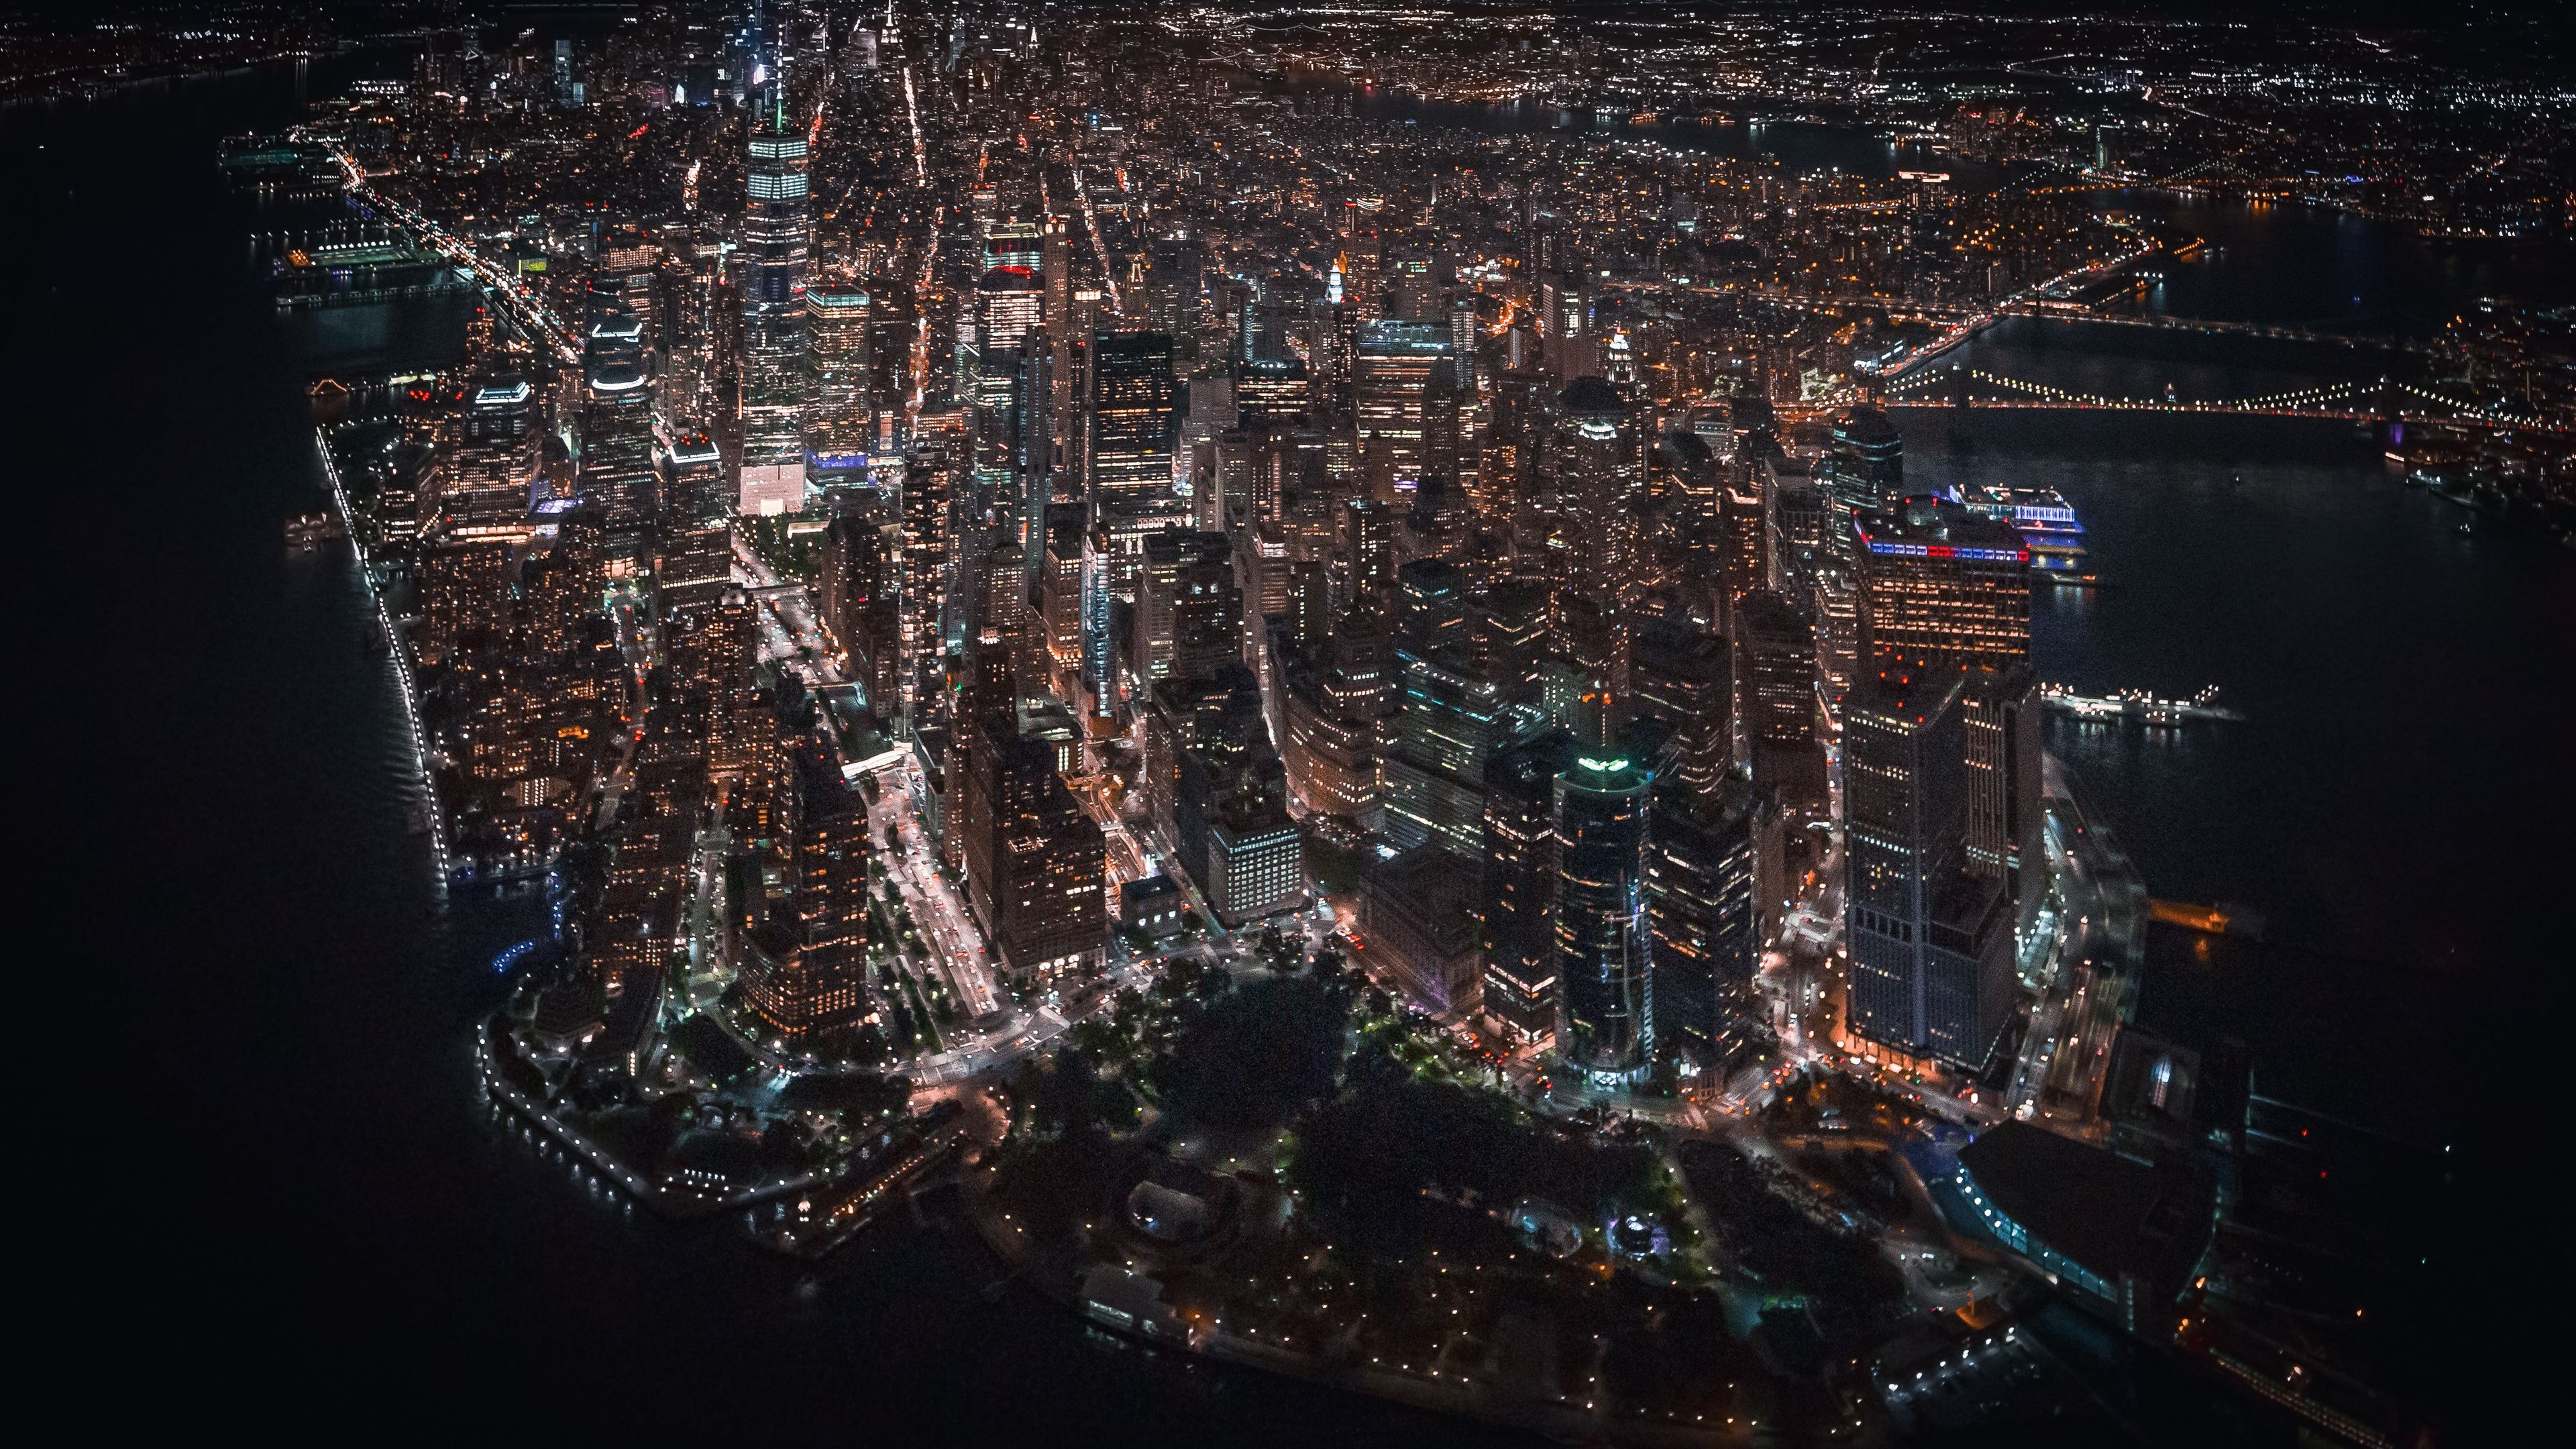 Wallpaper 4k Nyc Downtown Helicopter View 4k Wallpapers Buildings